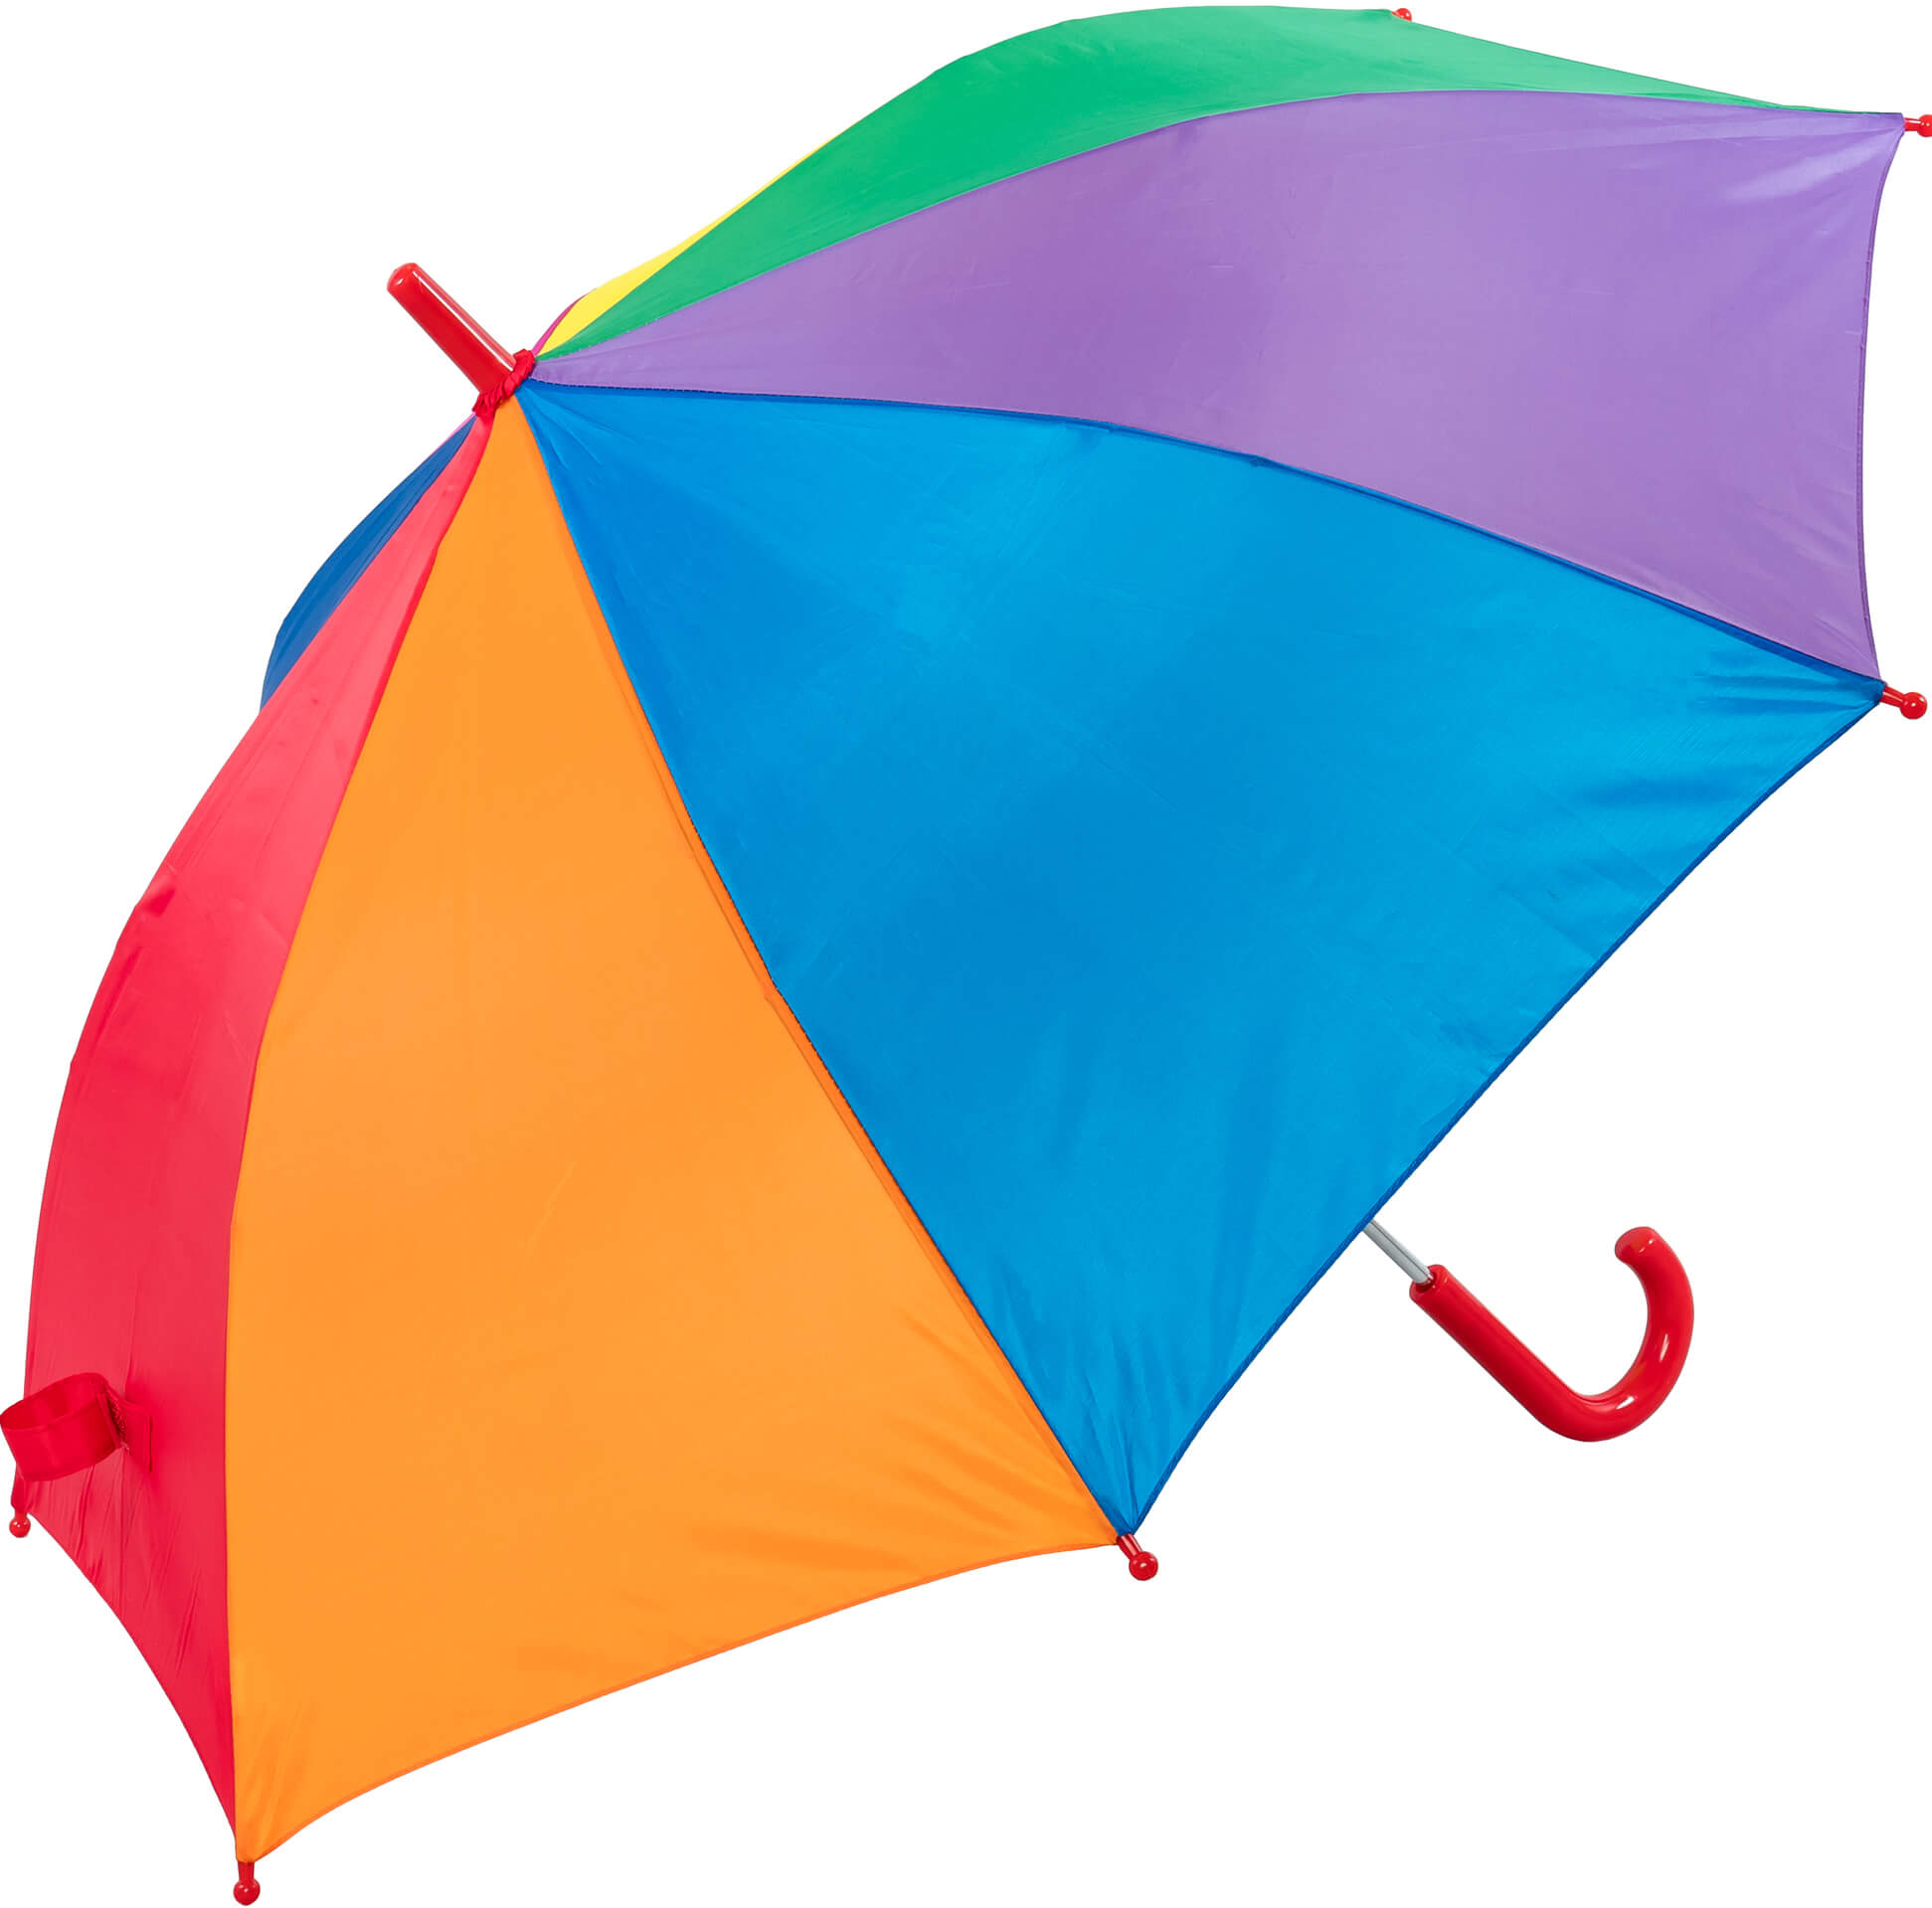 Kids Rainbow Umbrella (3497)